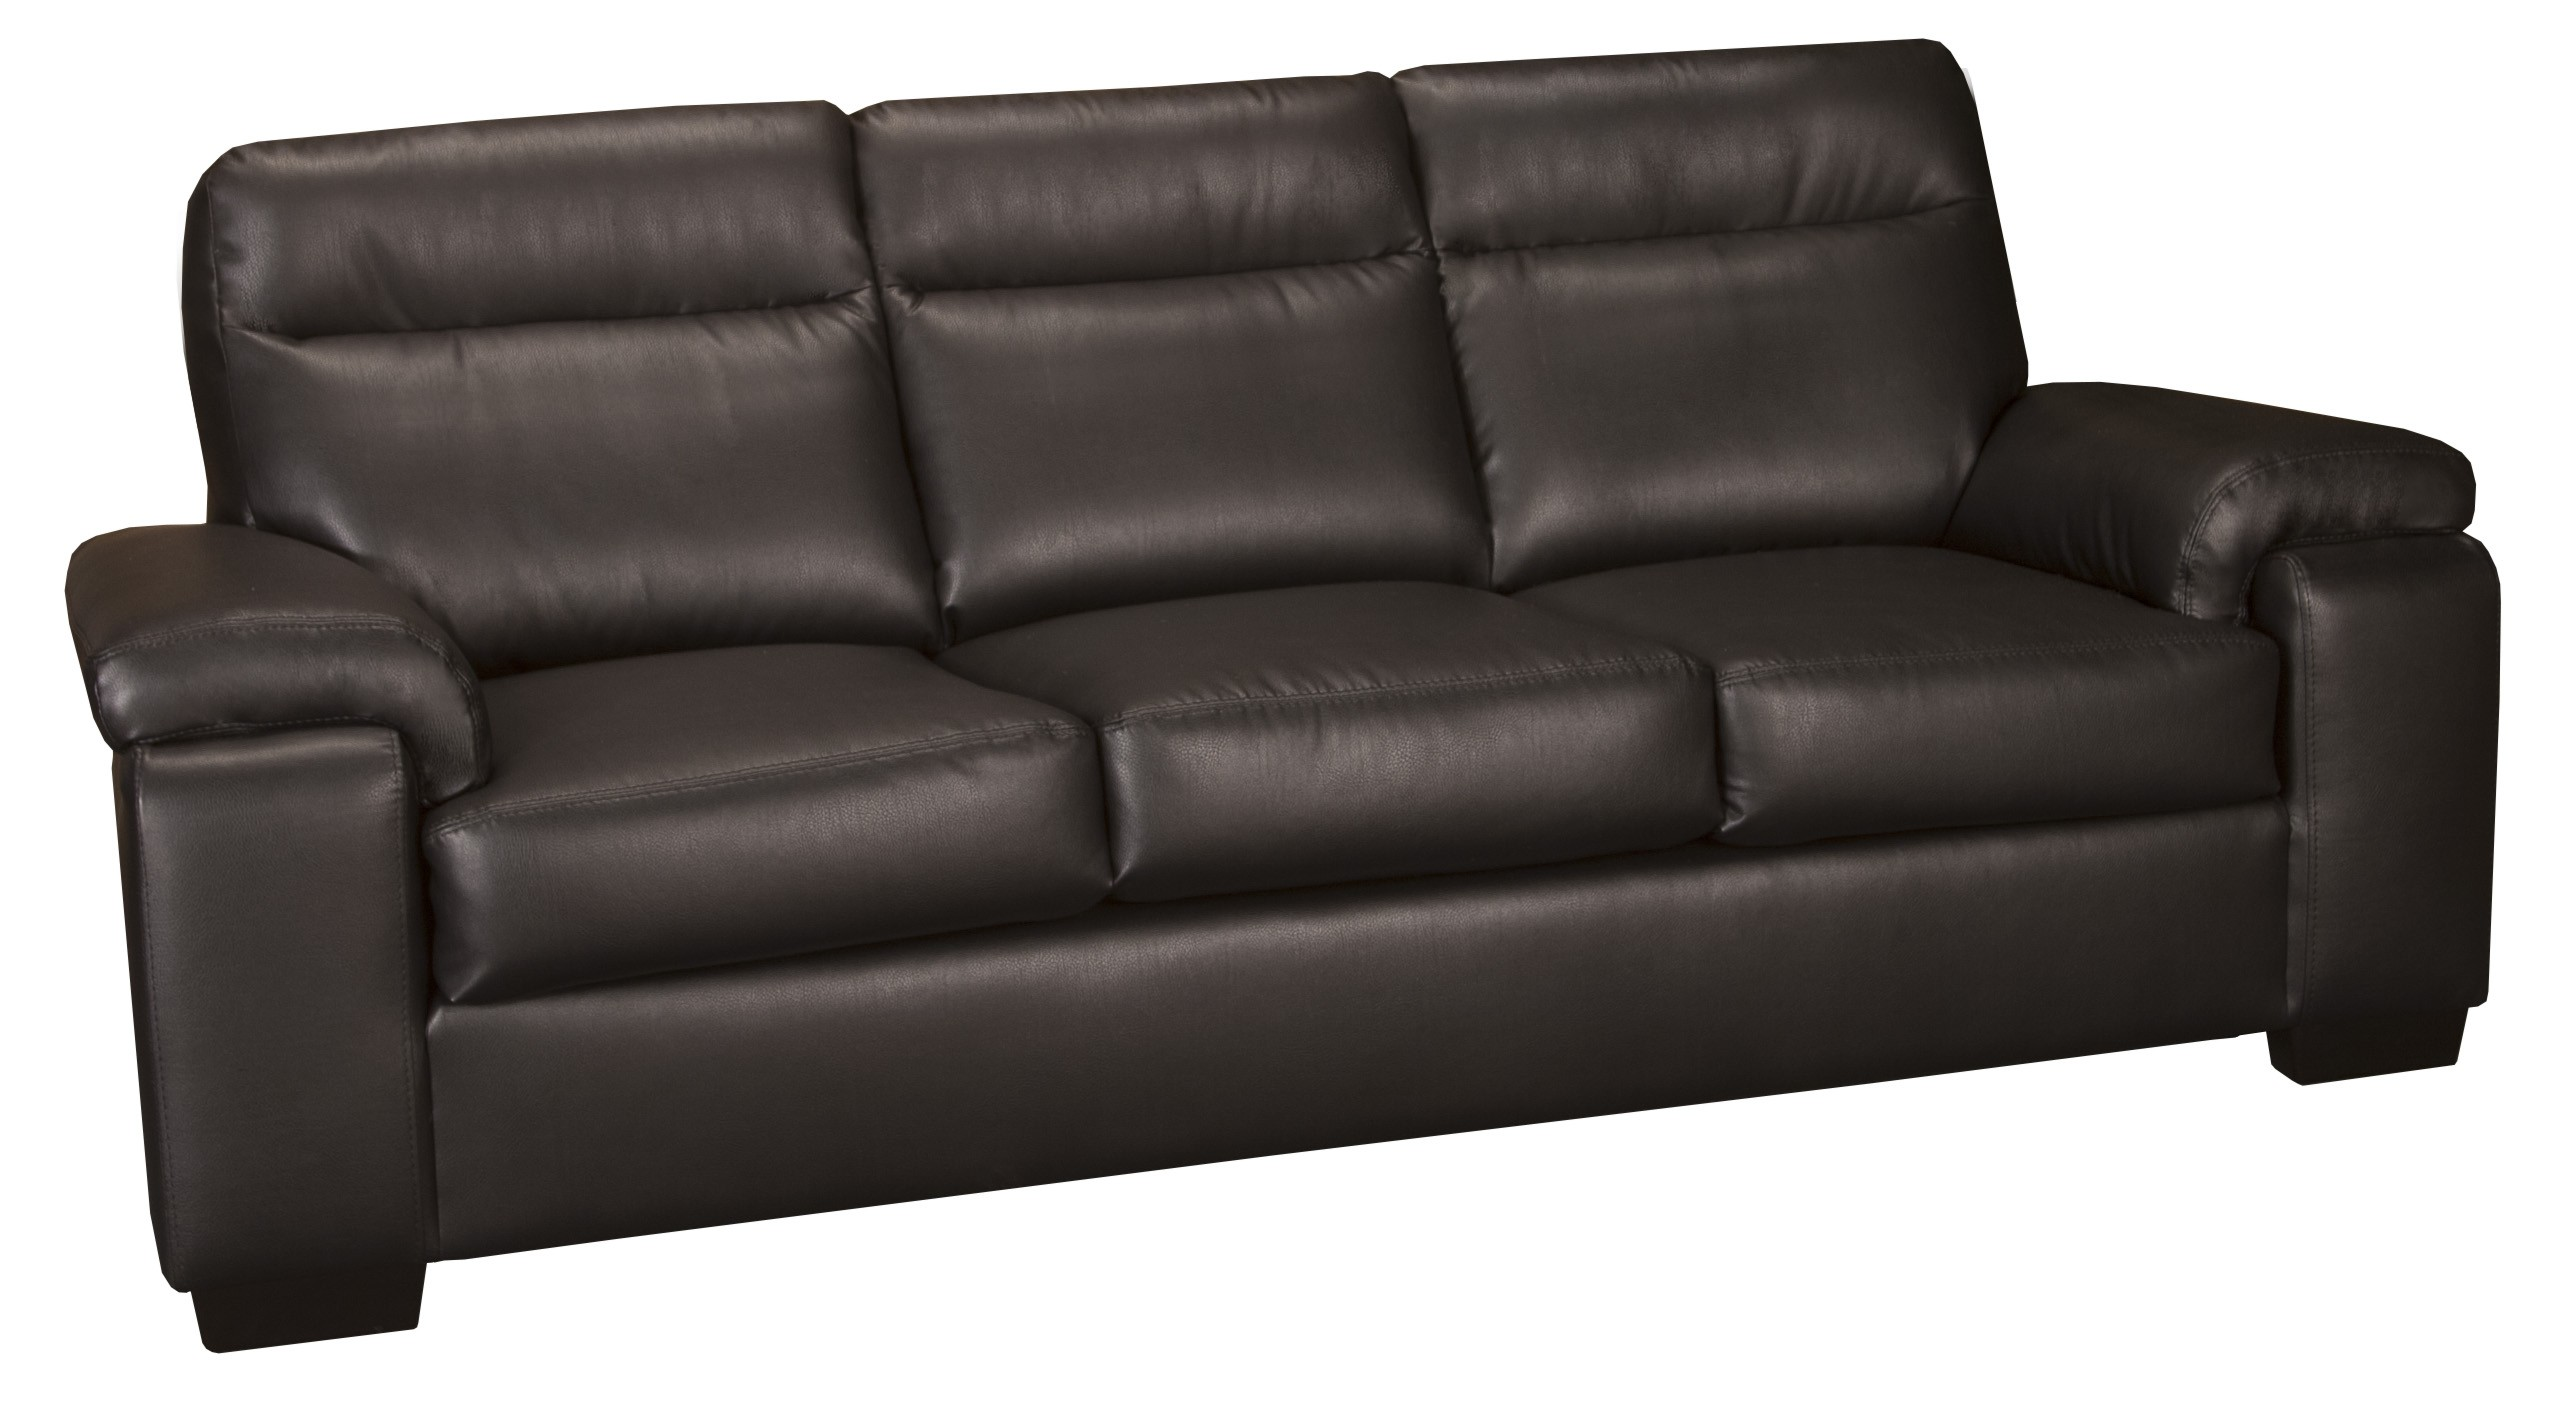 Denver sofas for Leather sectional sofa denver